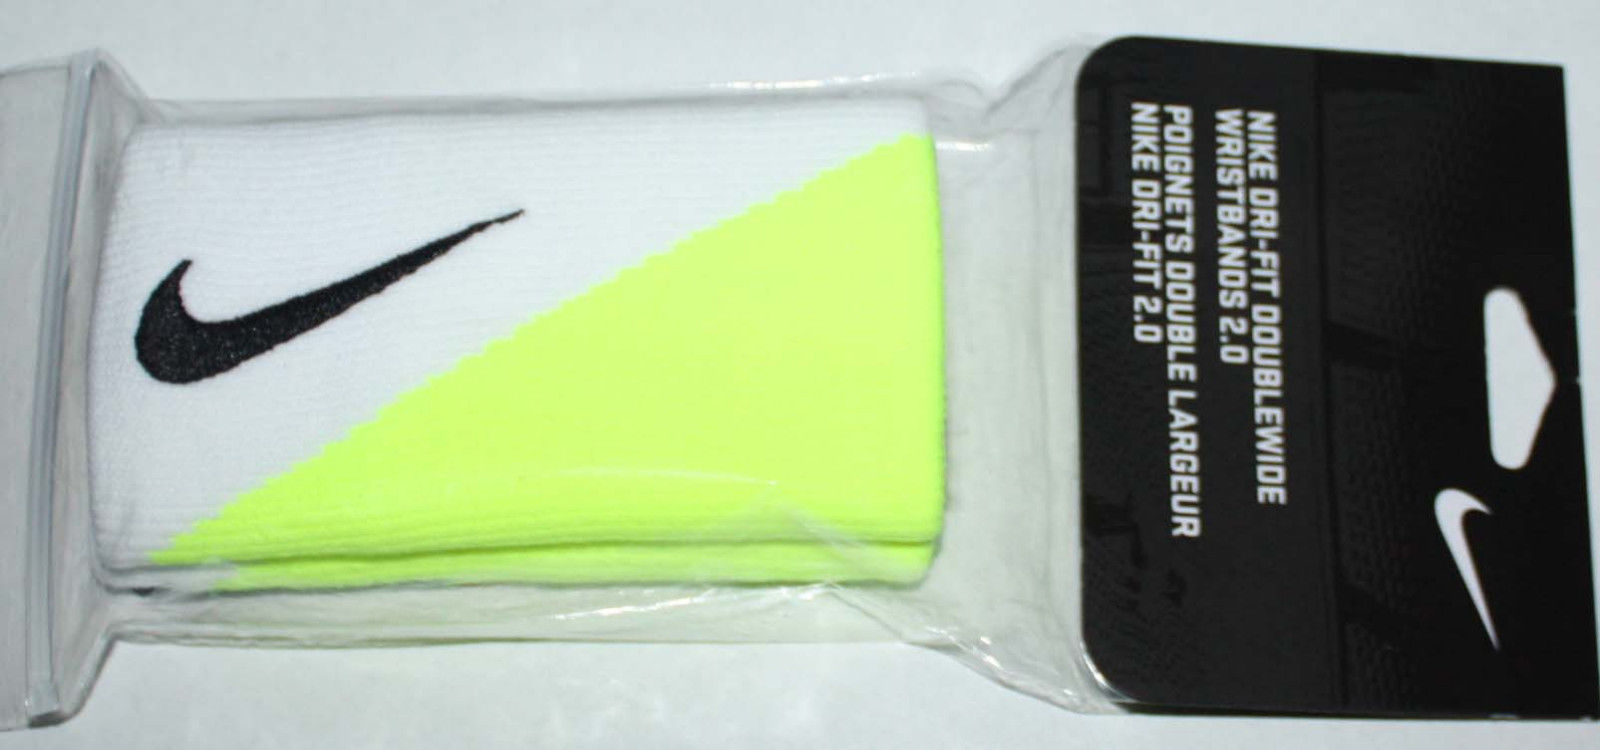 Nike 2.0 Dri-Fit Double-Wide Two-Tone Wristbands White/Volt/Black Swoosh 11483